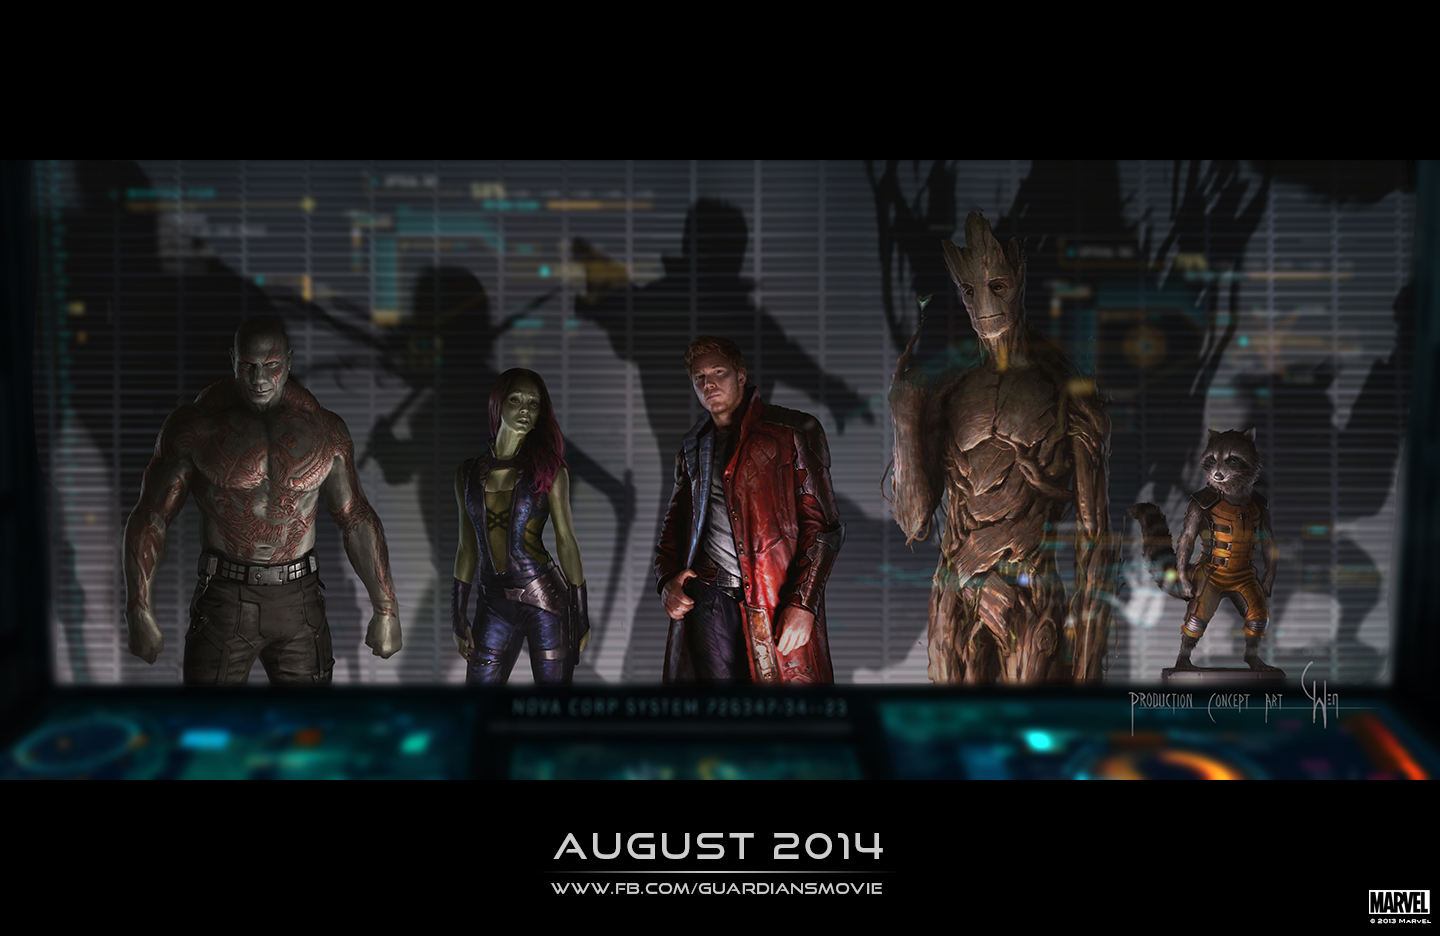 #GuardiansOfTheGalaxy